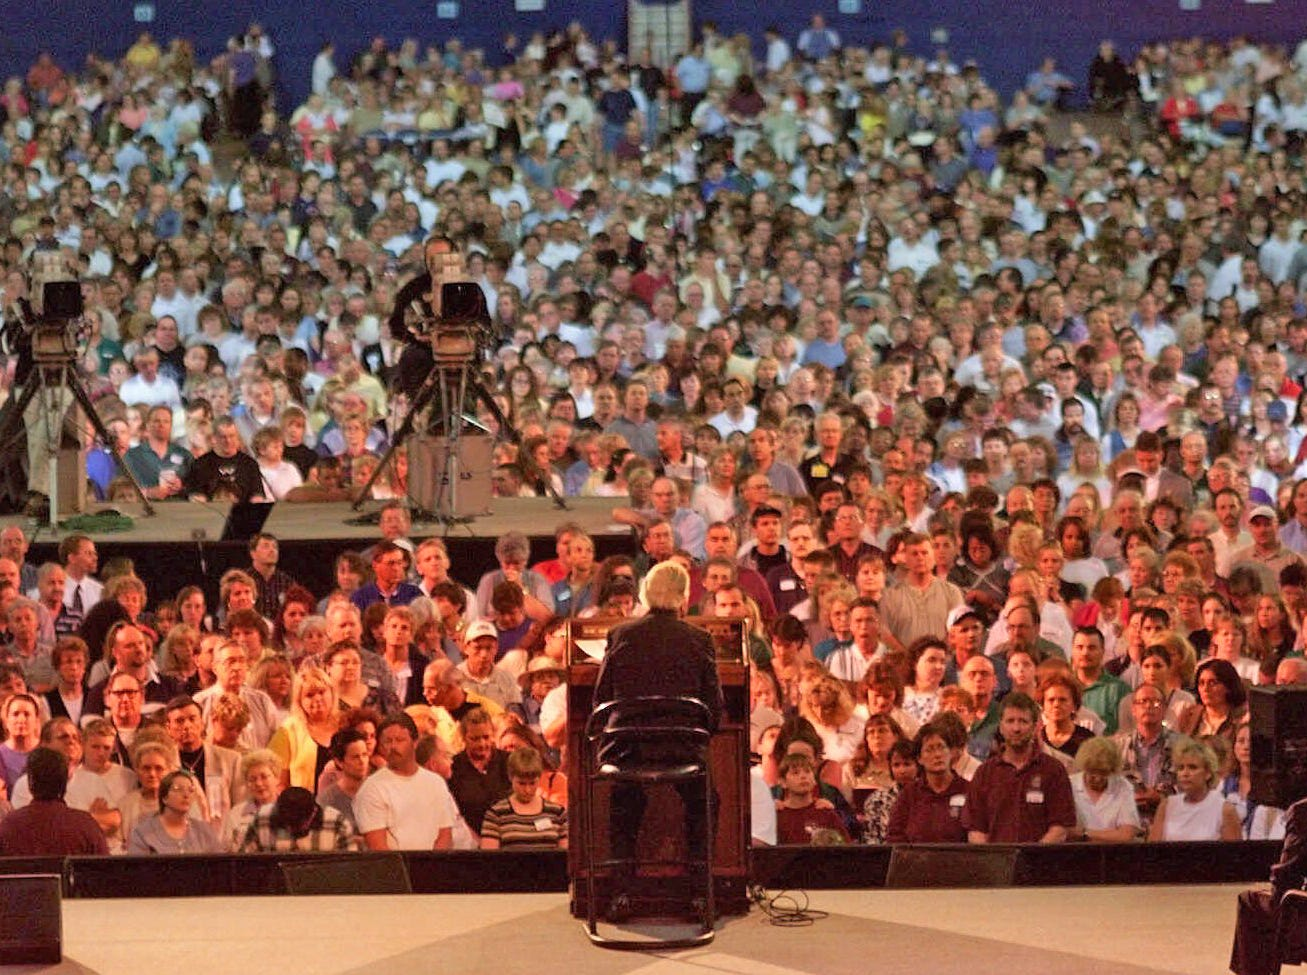 Thousands of Christians converge on the floor of the RCA Dome in Indianapolis, Ind., after being called to the altar by Rev. Billy Graham, center, Friday, June 4, 1999. Graham addressed the crowd on the second night of his Indiana Crusade.